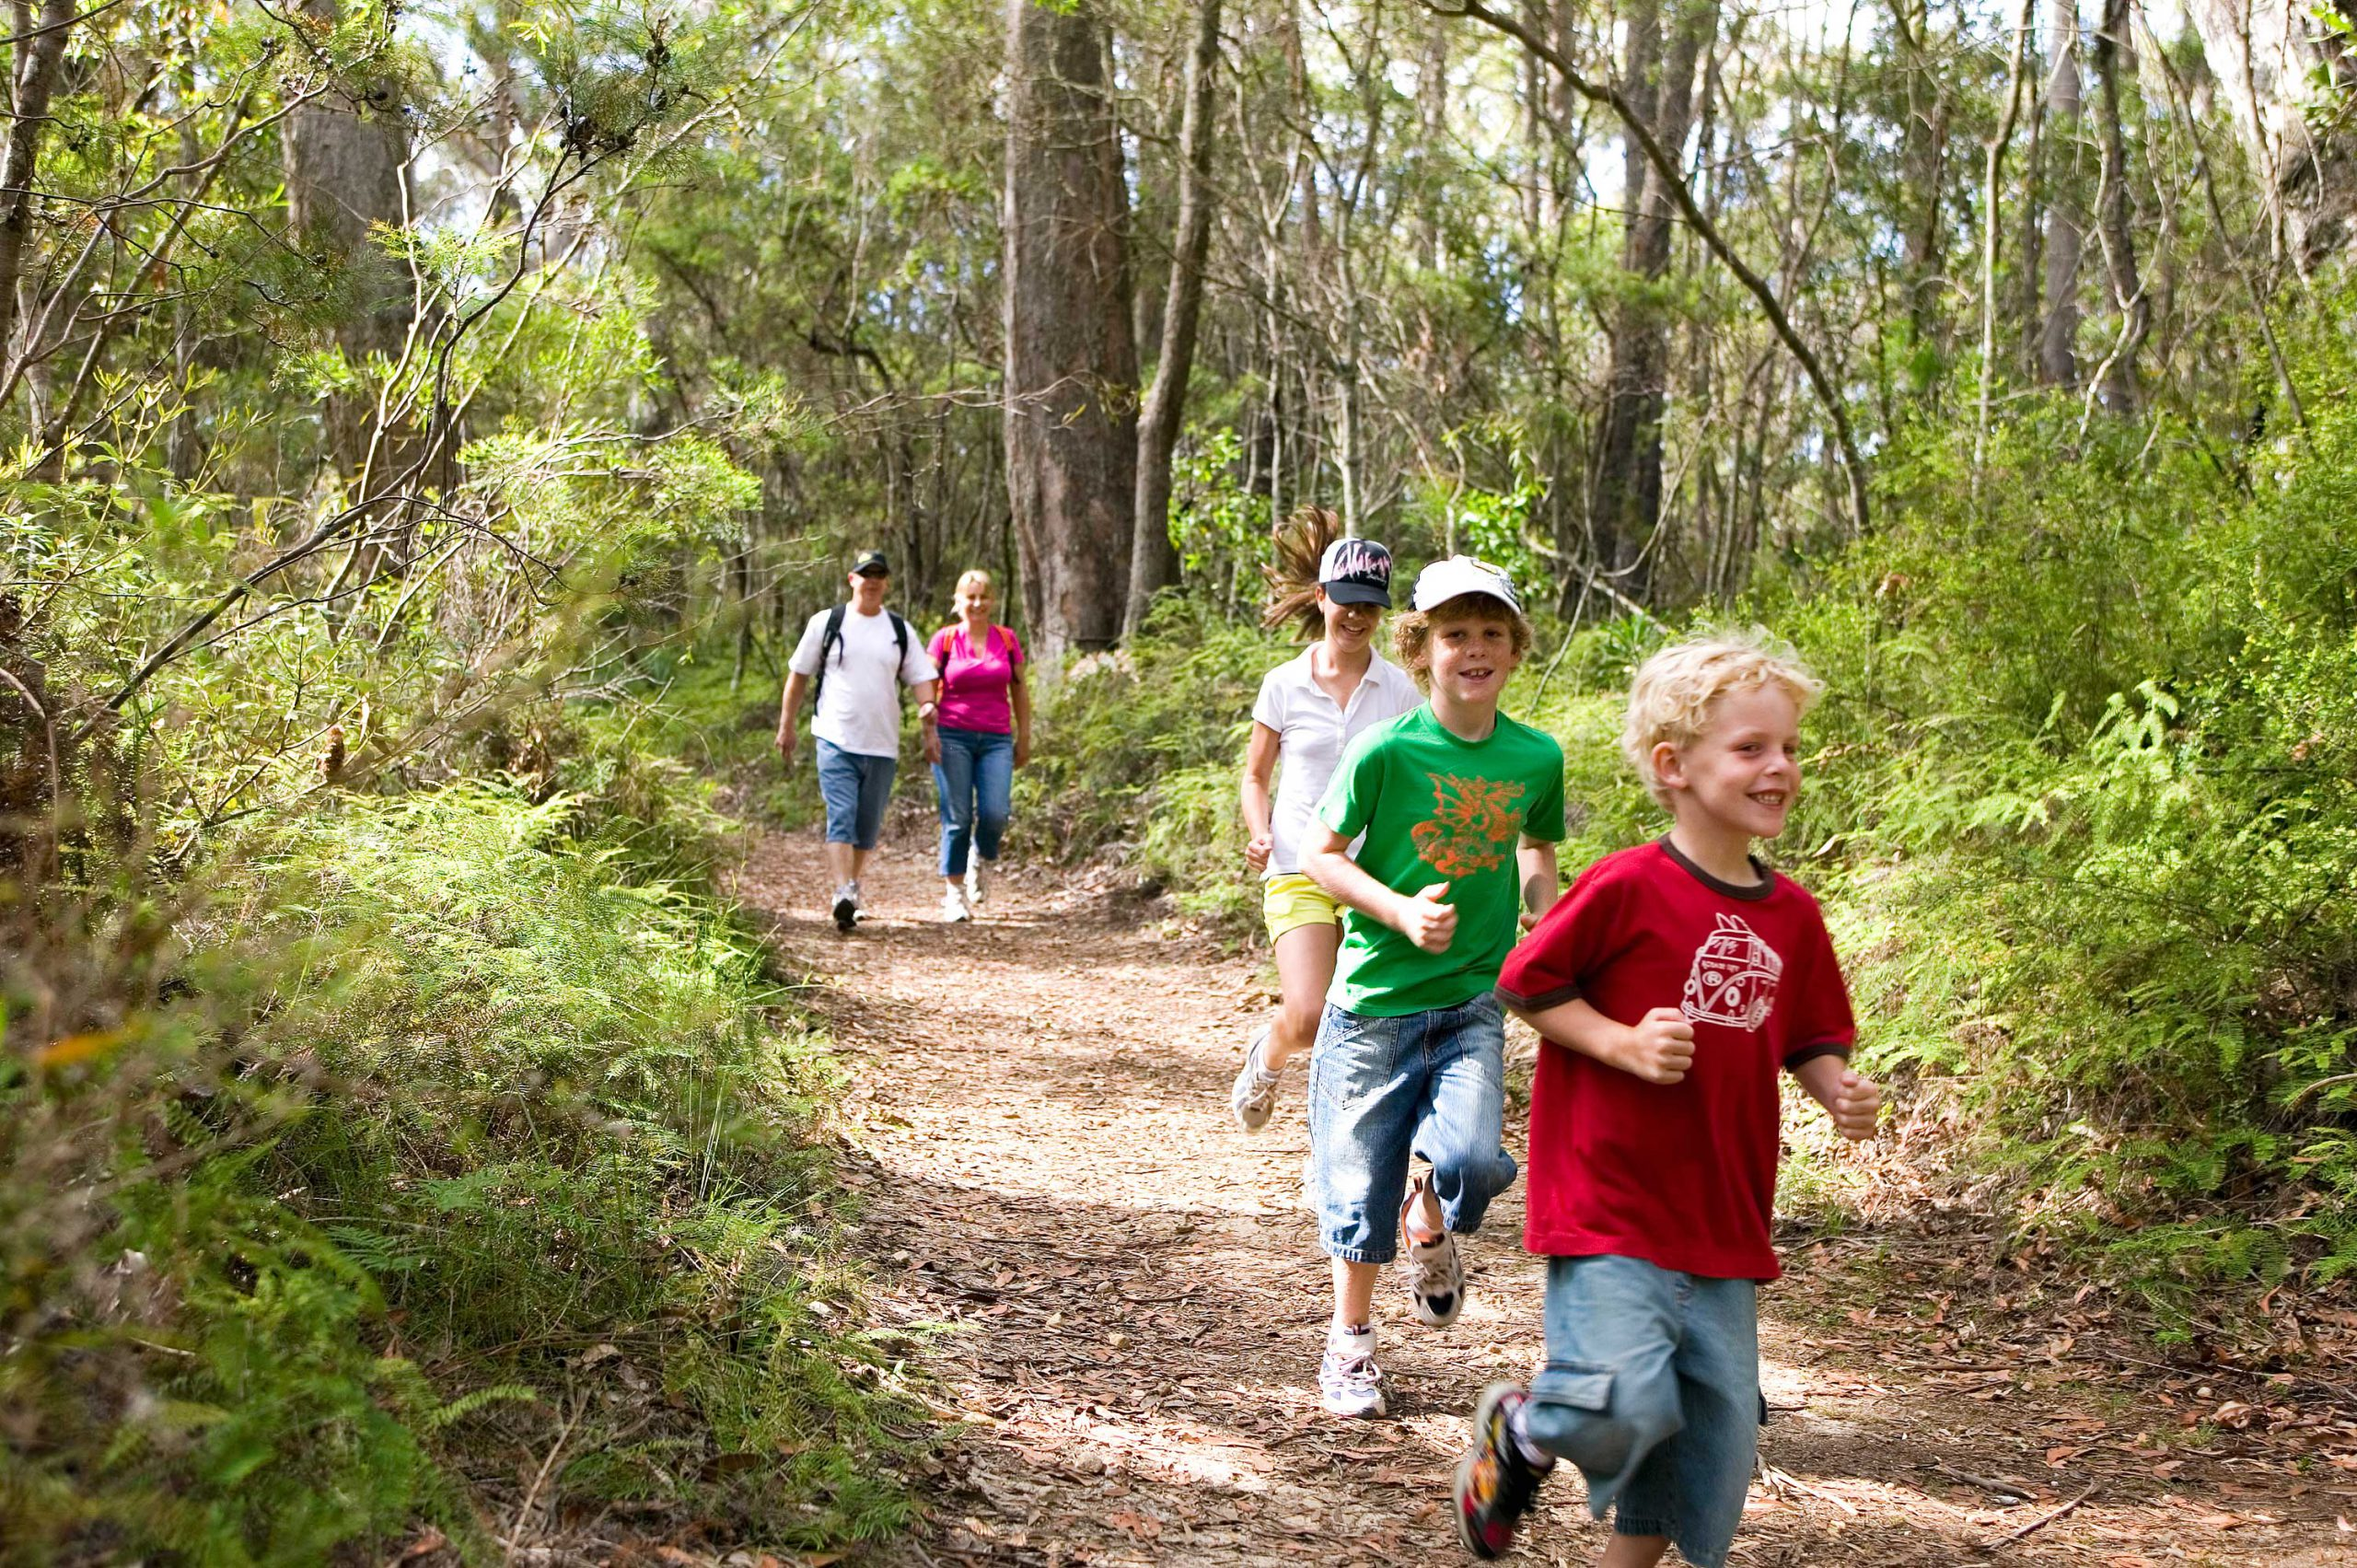 Bush walking in the Southern Highlands